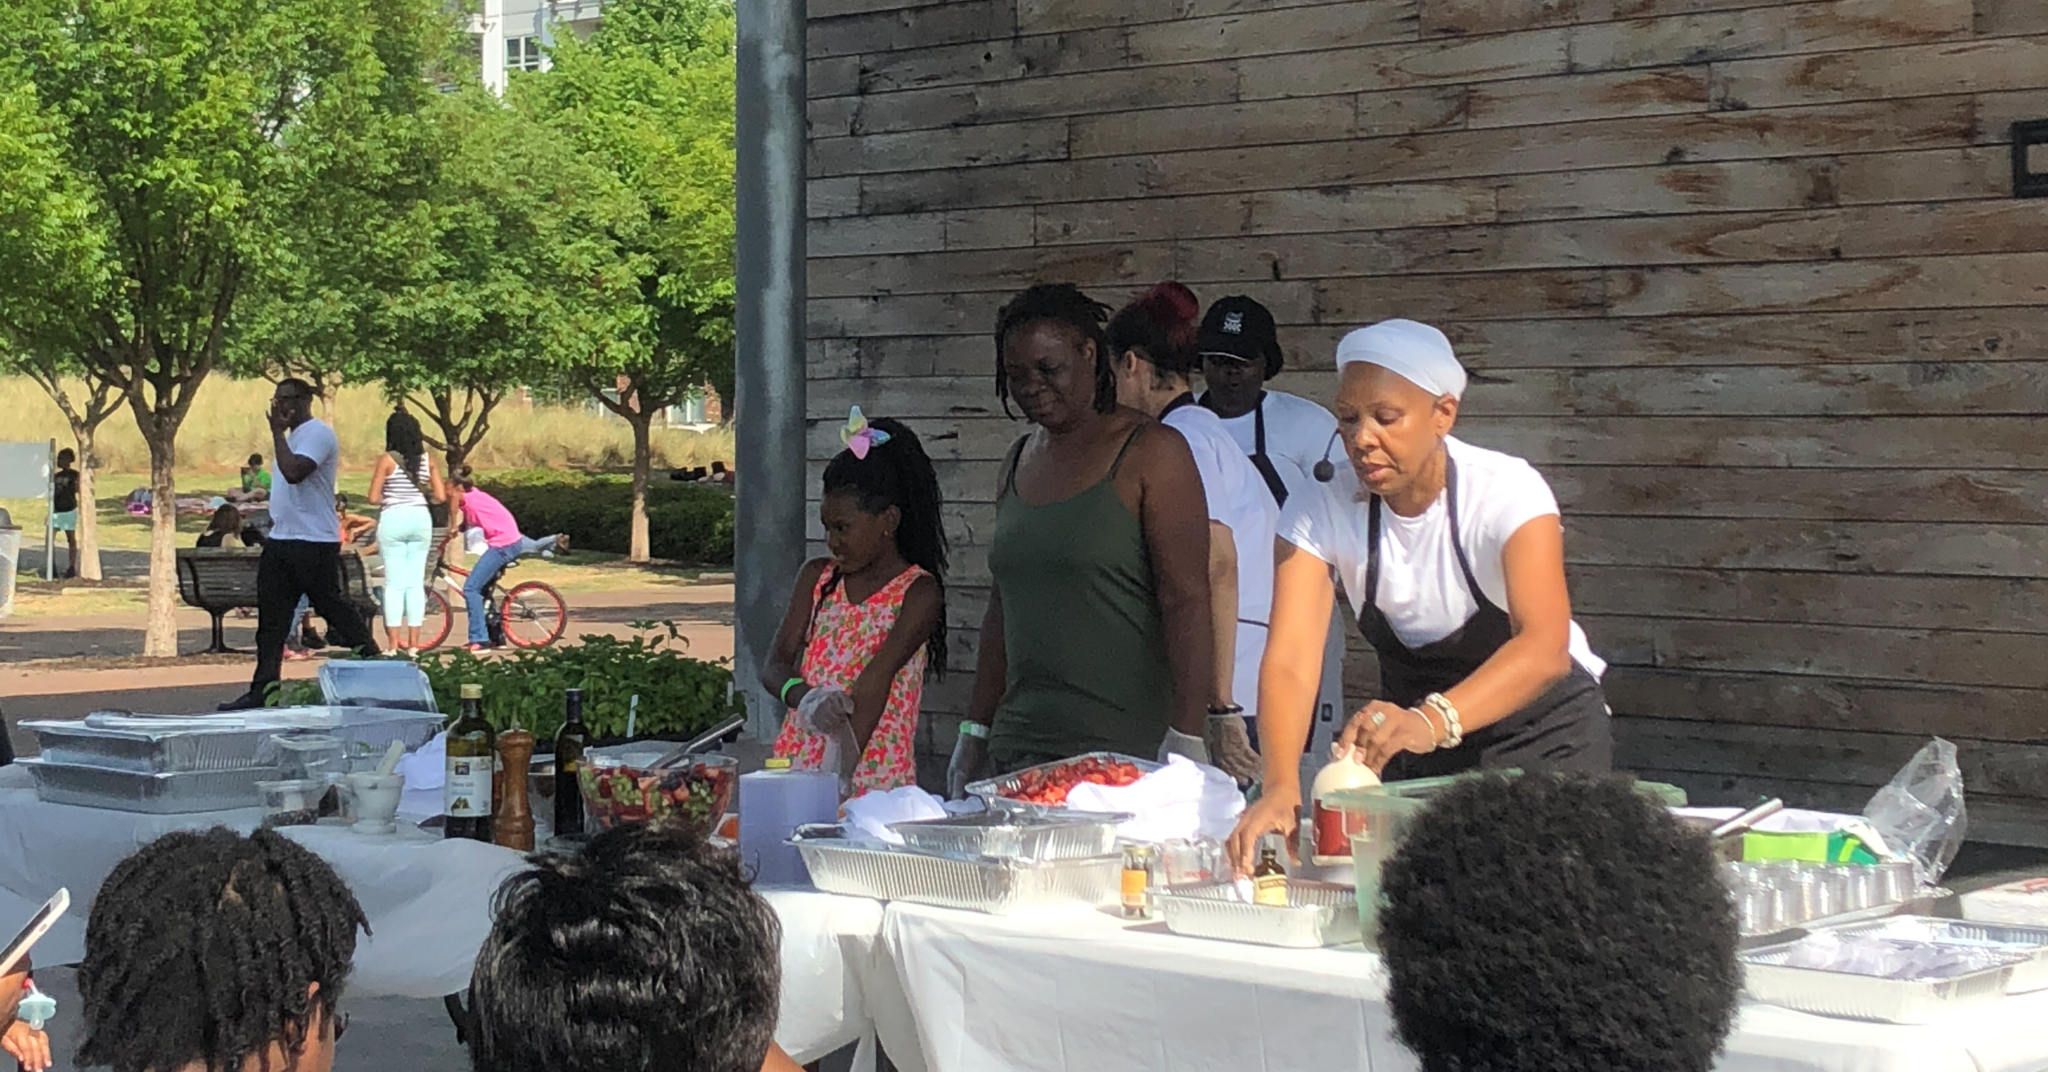 Whip up something tasty with FREE Cooking Classes in Railroad Park